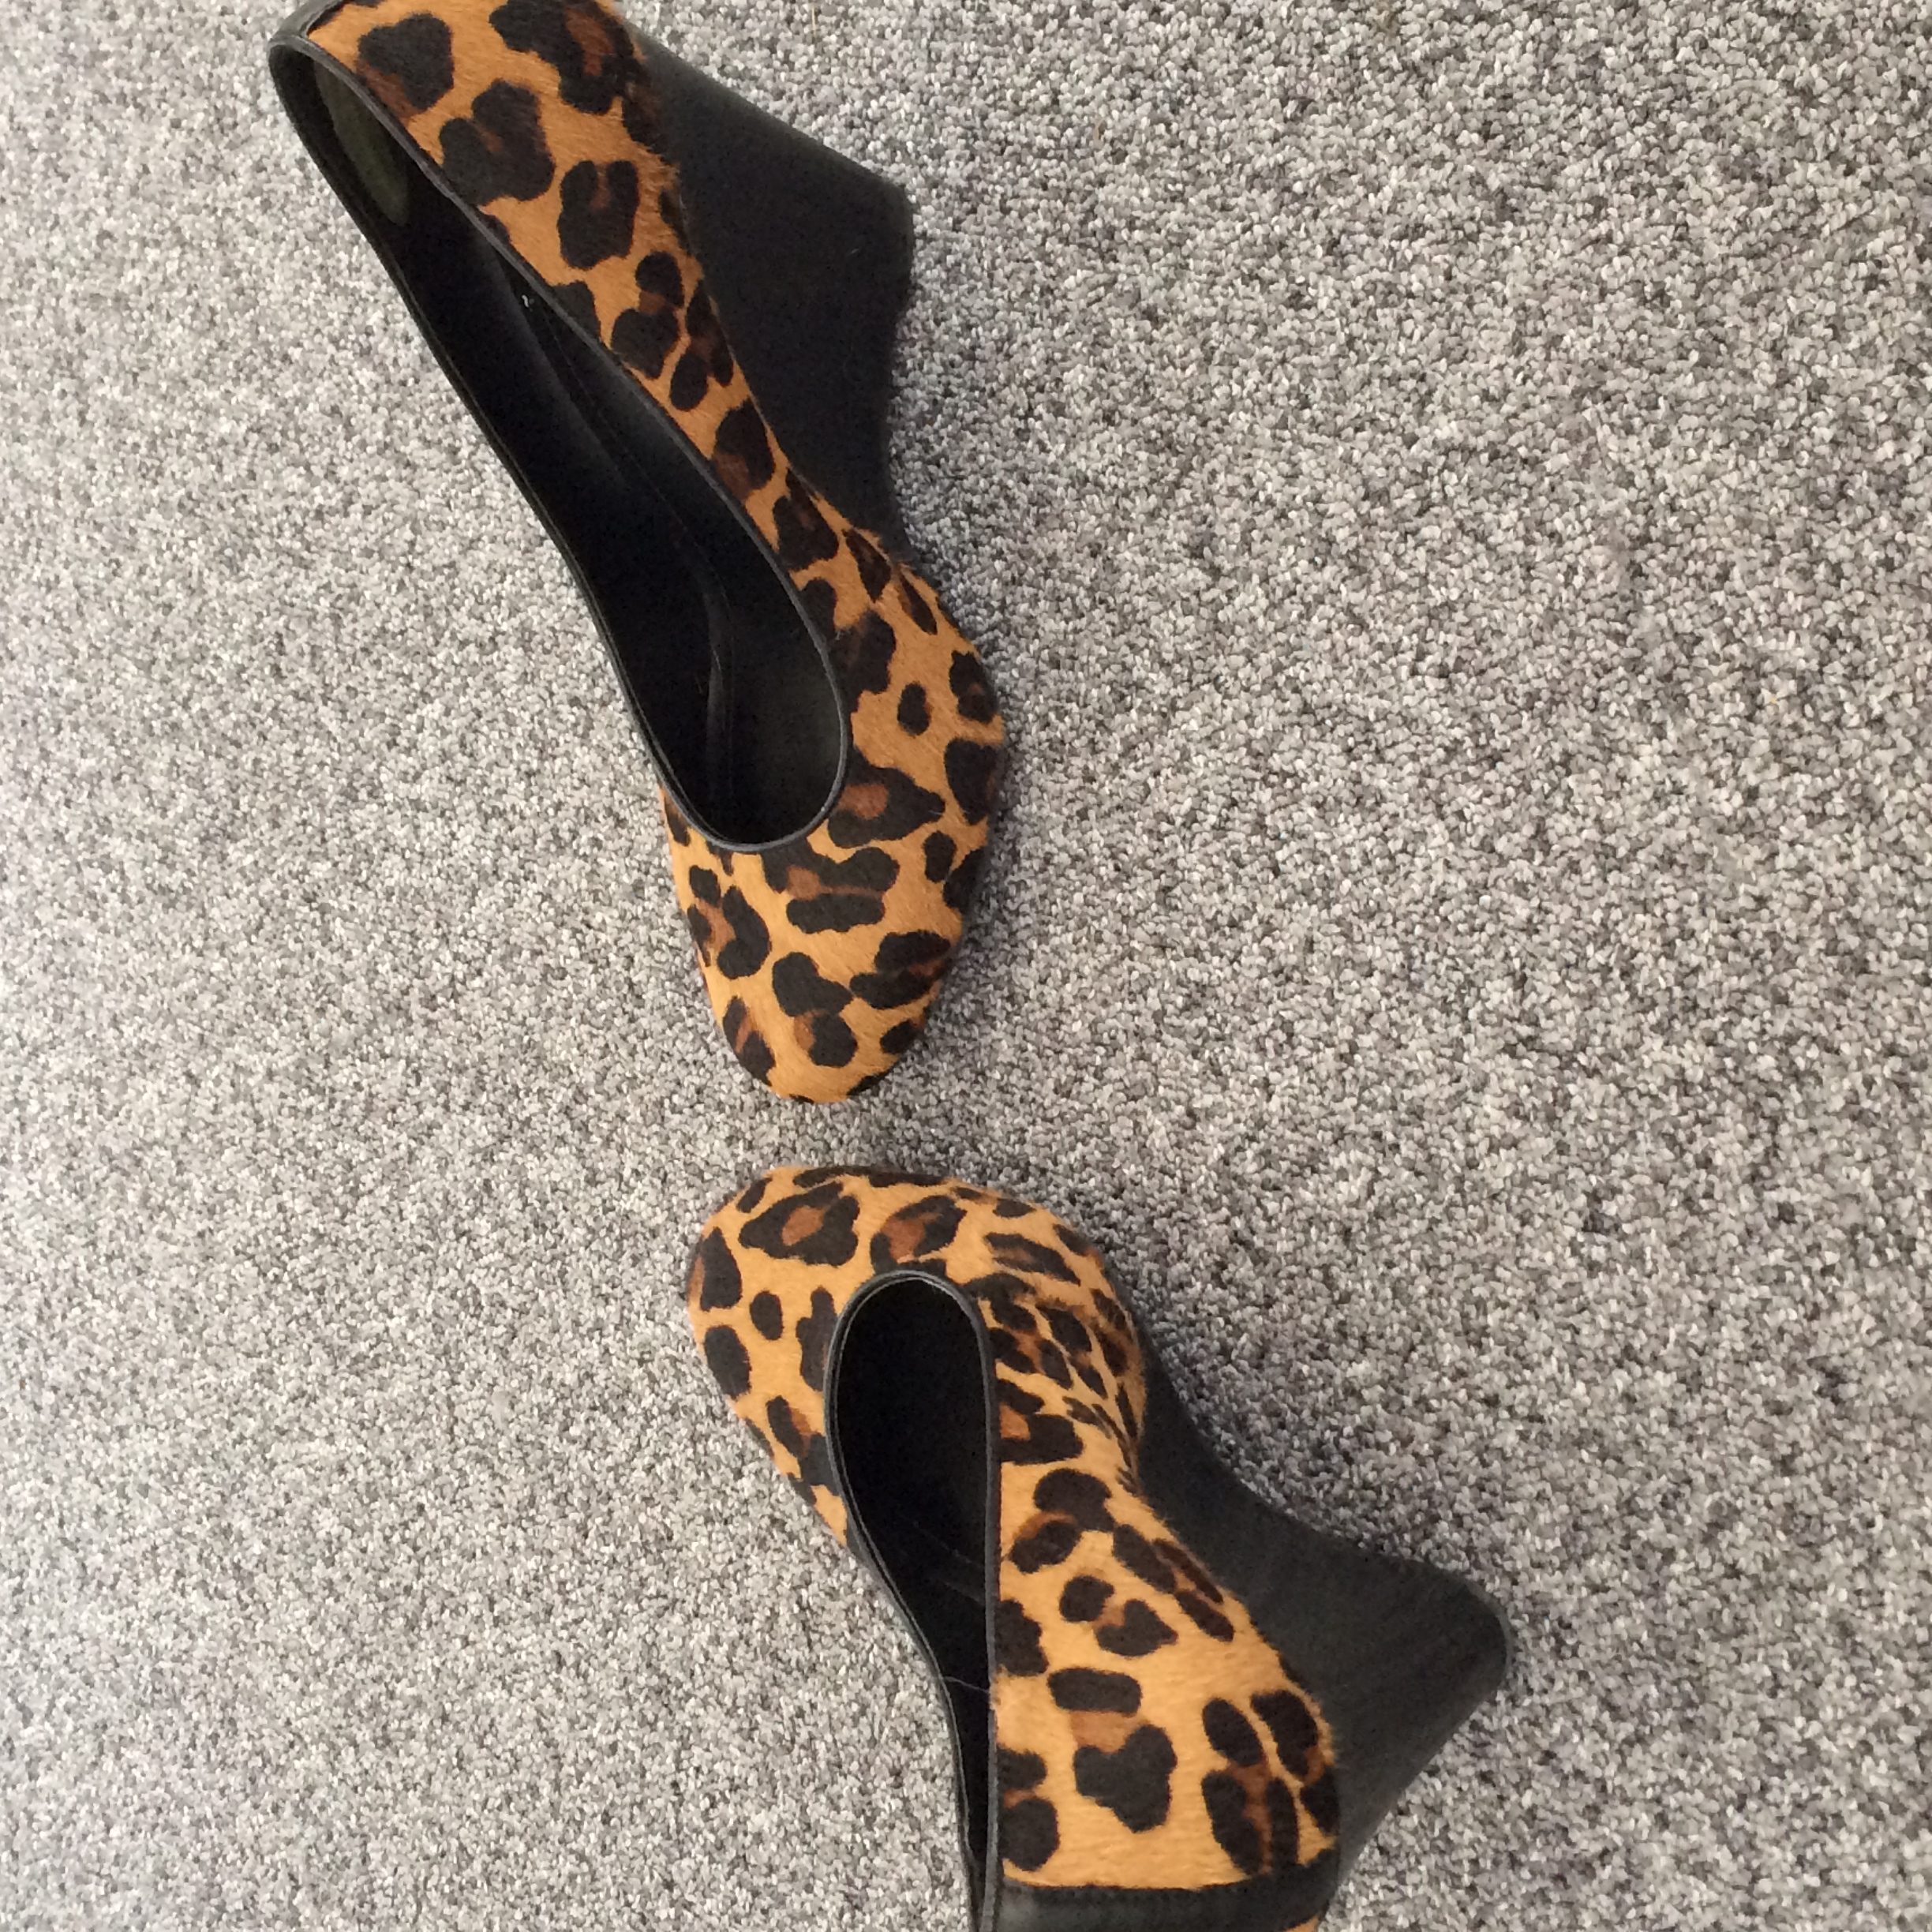 30f3b548355 ... 4 inch heel. Gillian Lewis  Spectrum - Leopardskin wedge heeled shoes